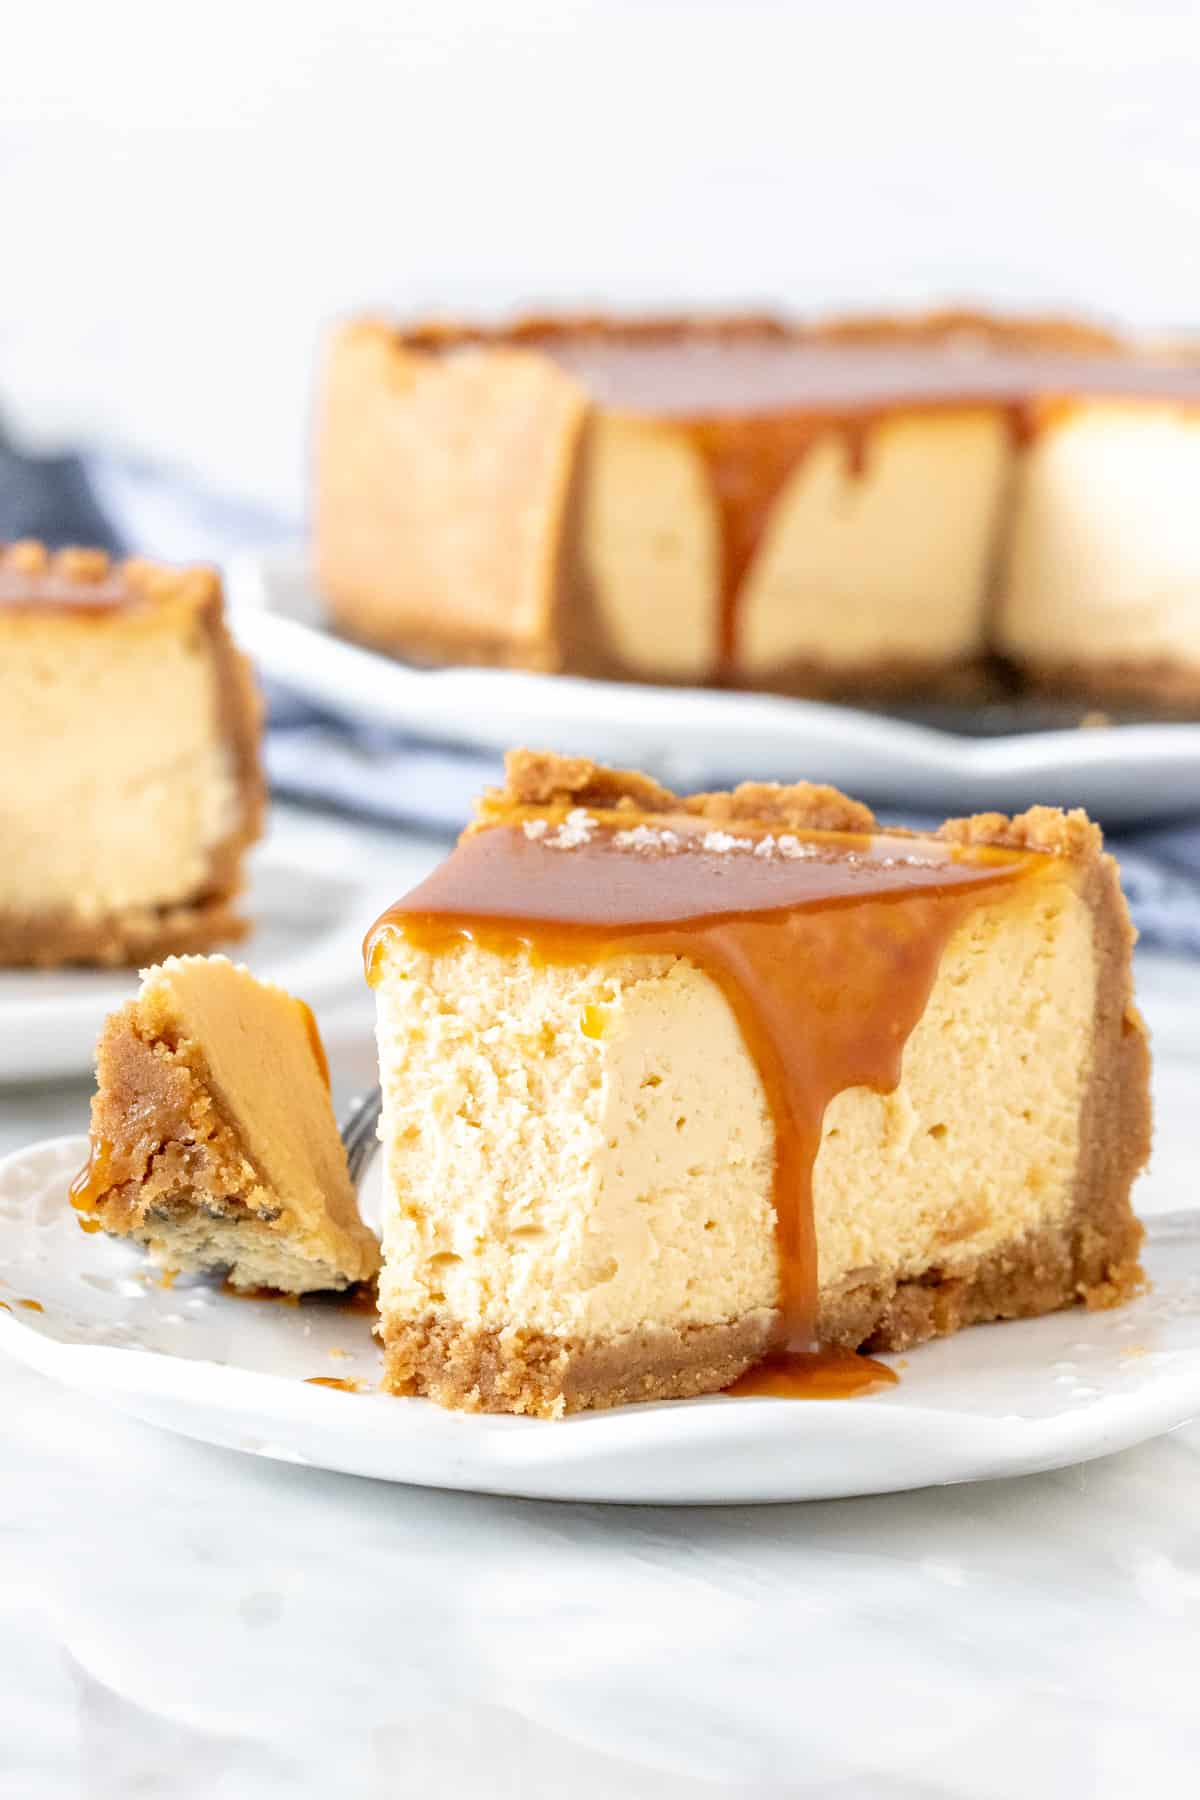 Slice of caramel cheesecake with a bite taken out of it.